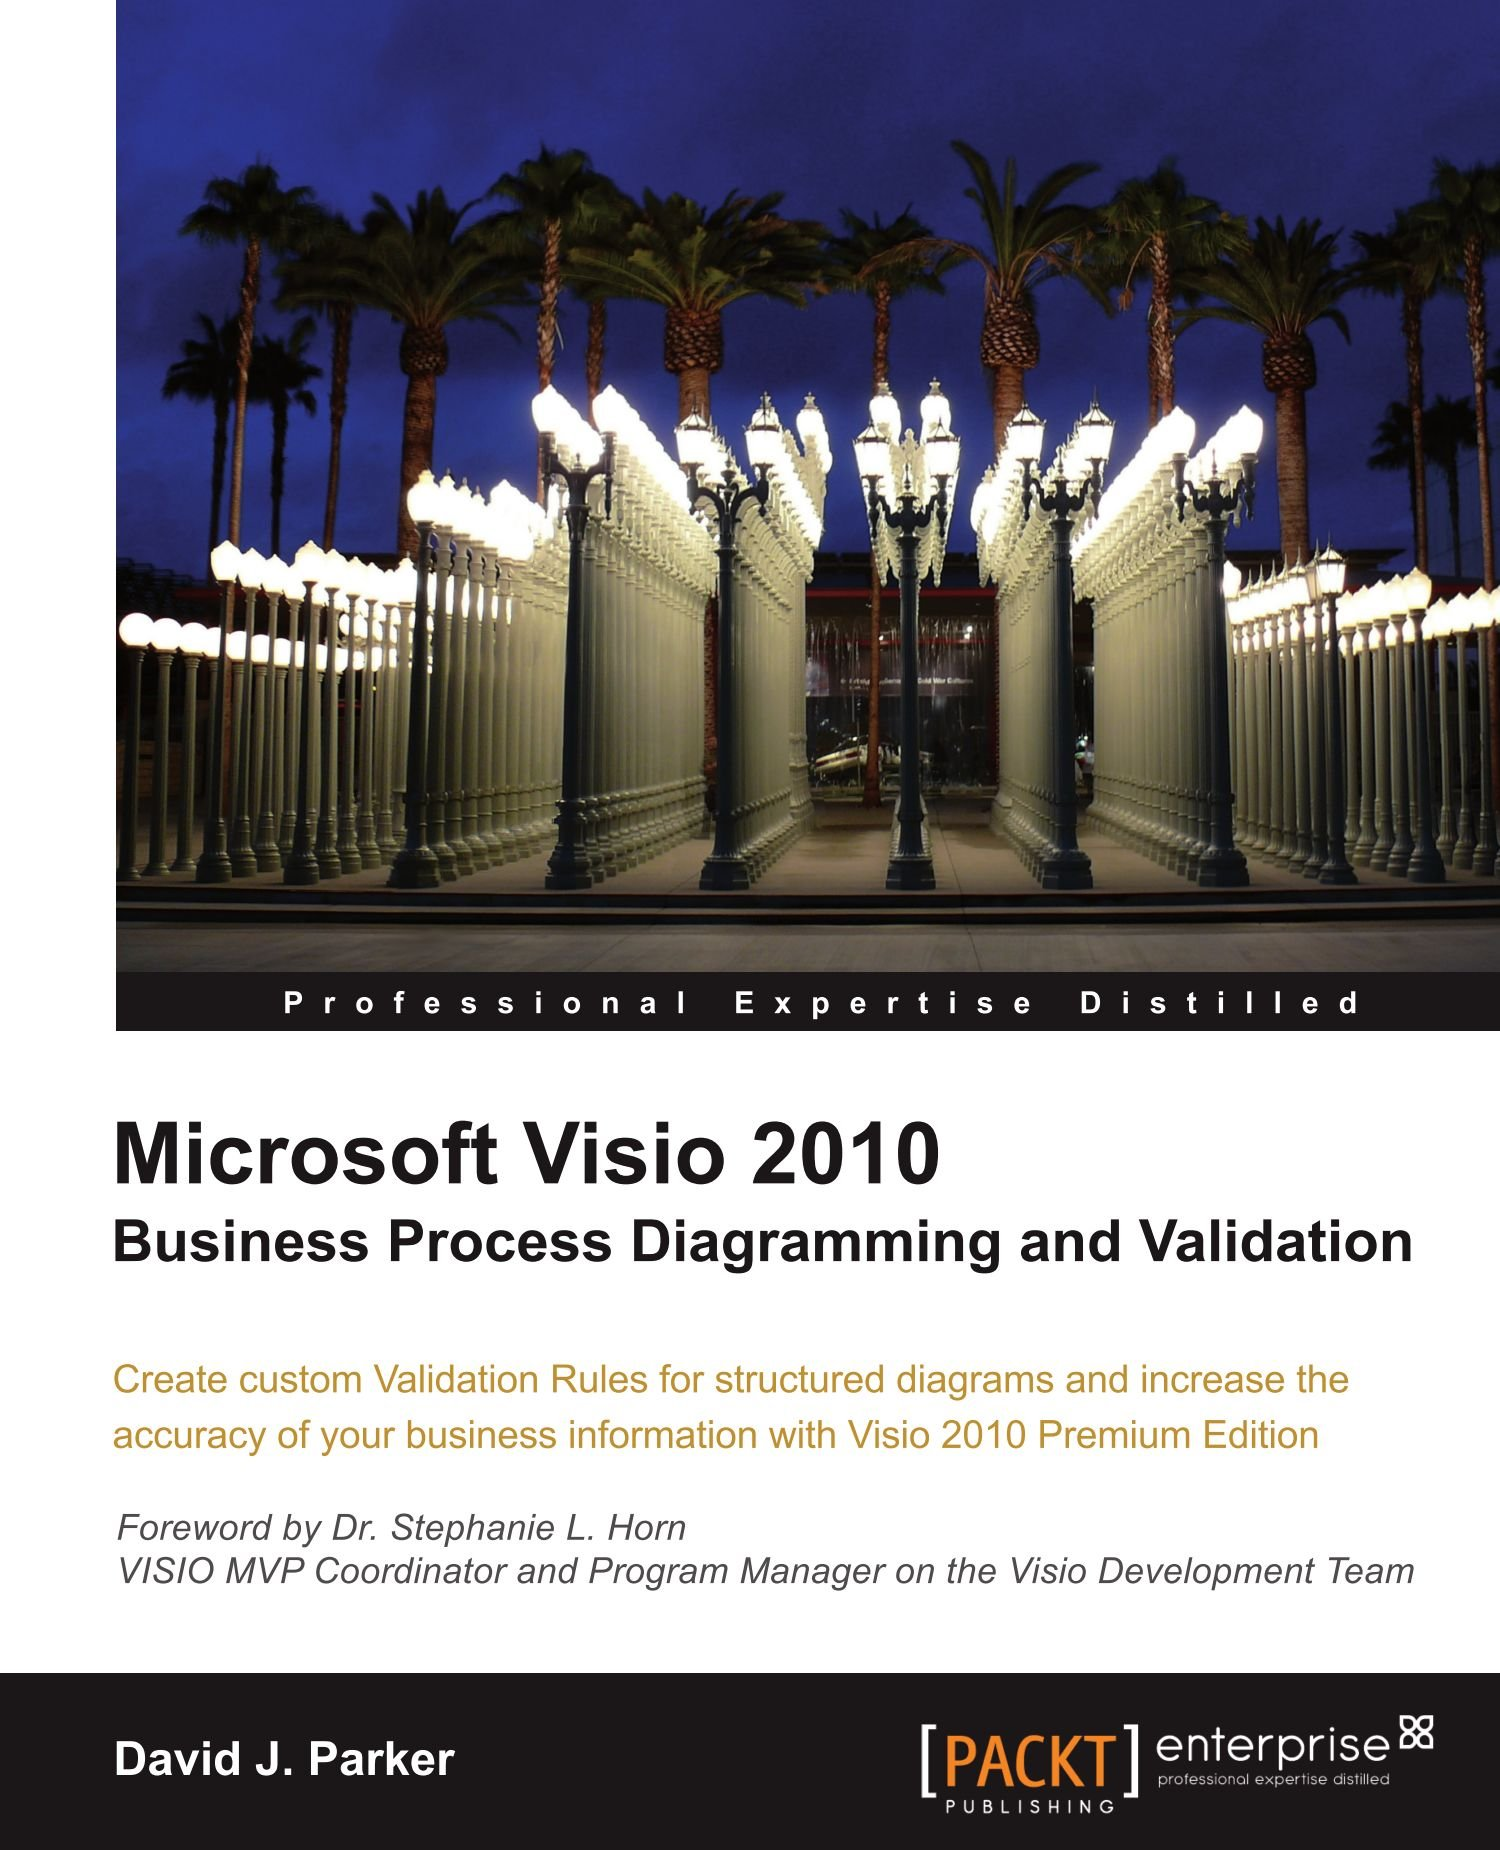 Download Microsoft Visio 2010 Business Process Diagramming and Validation pdf